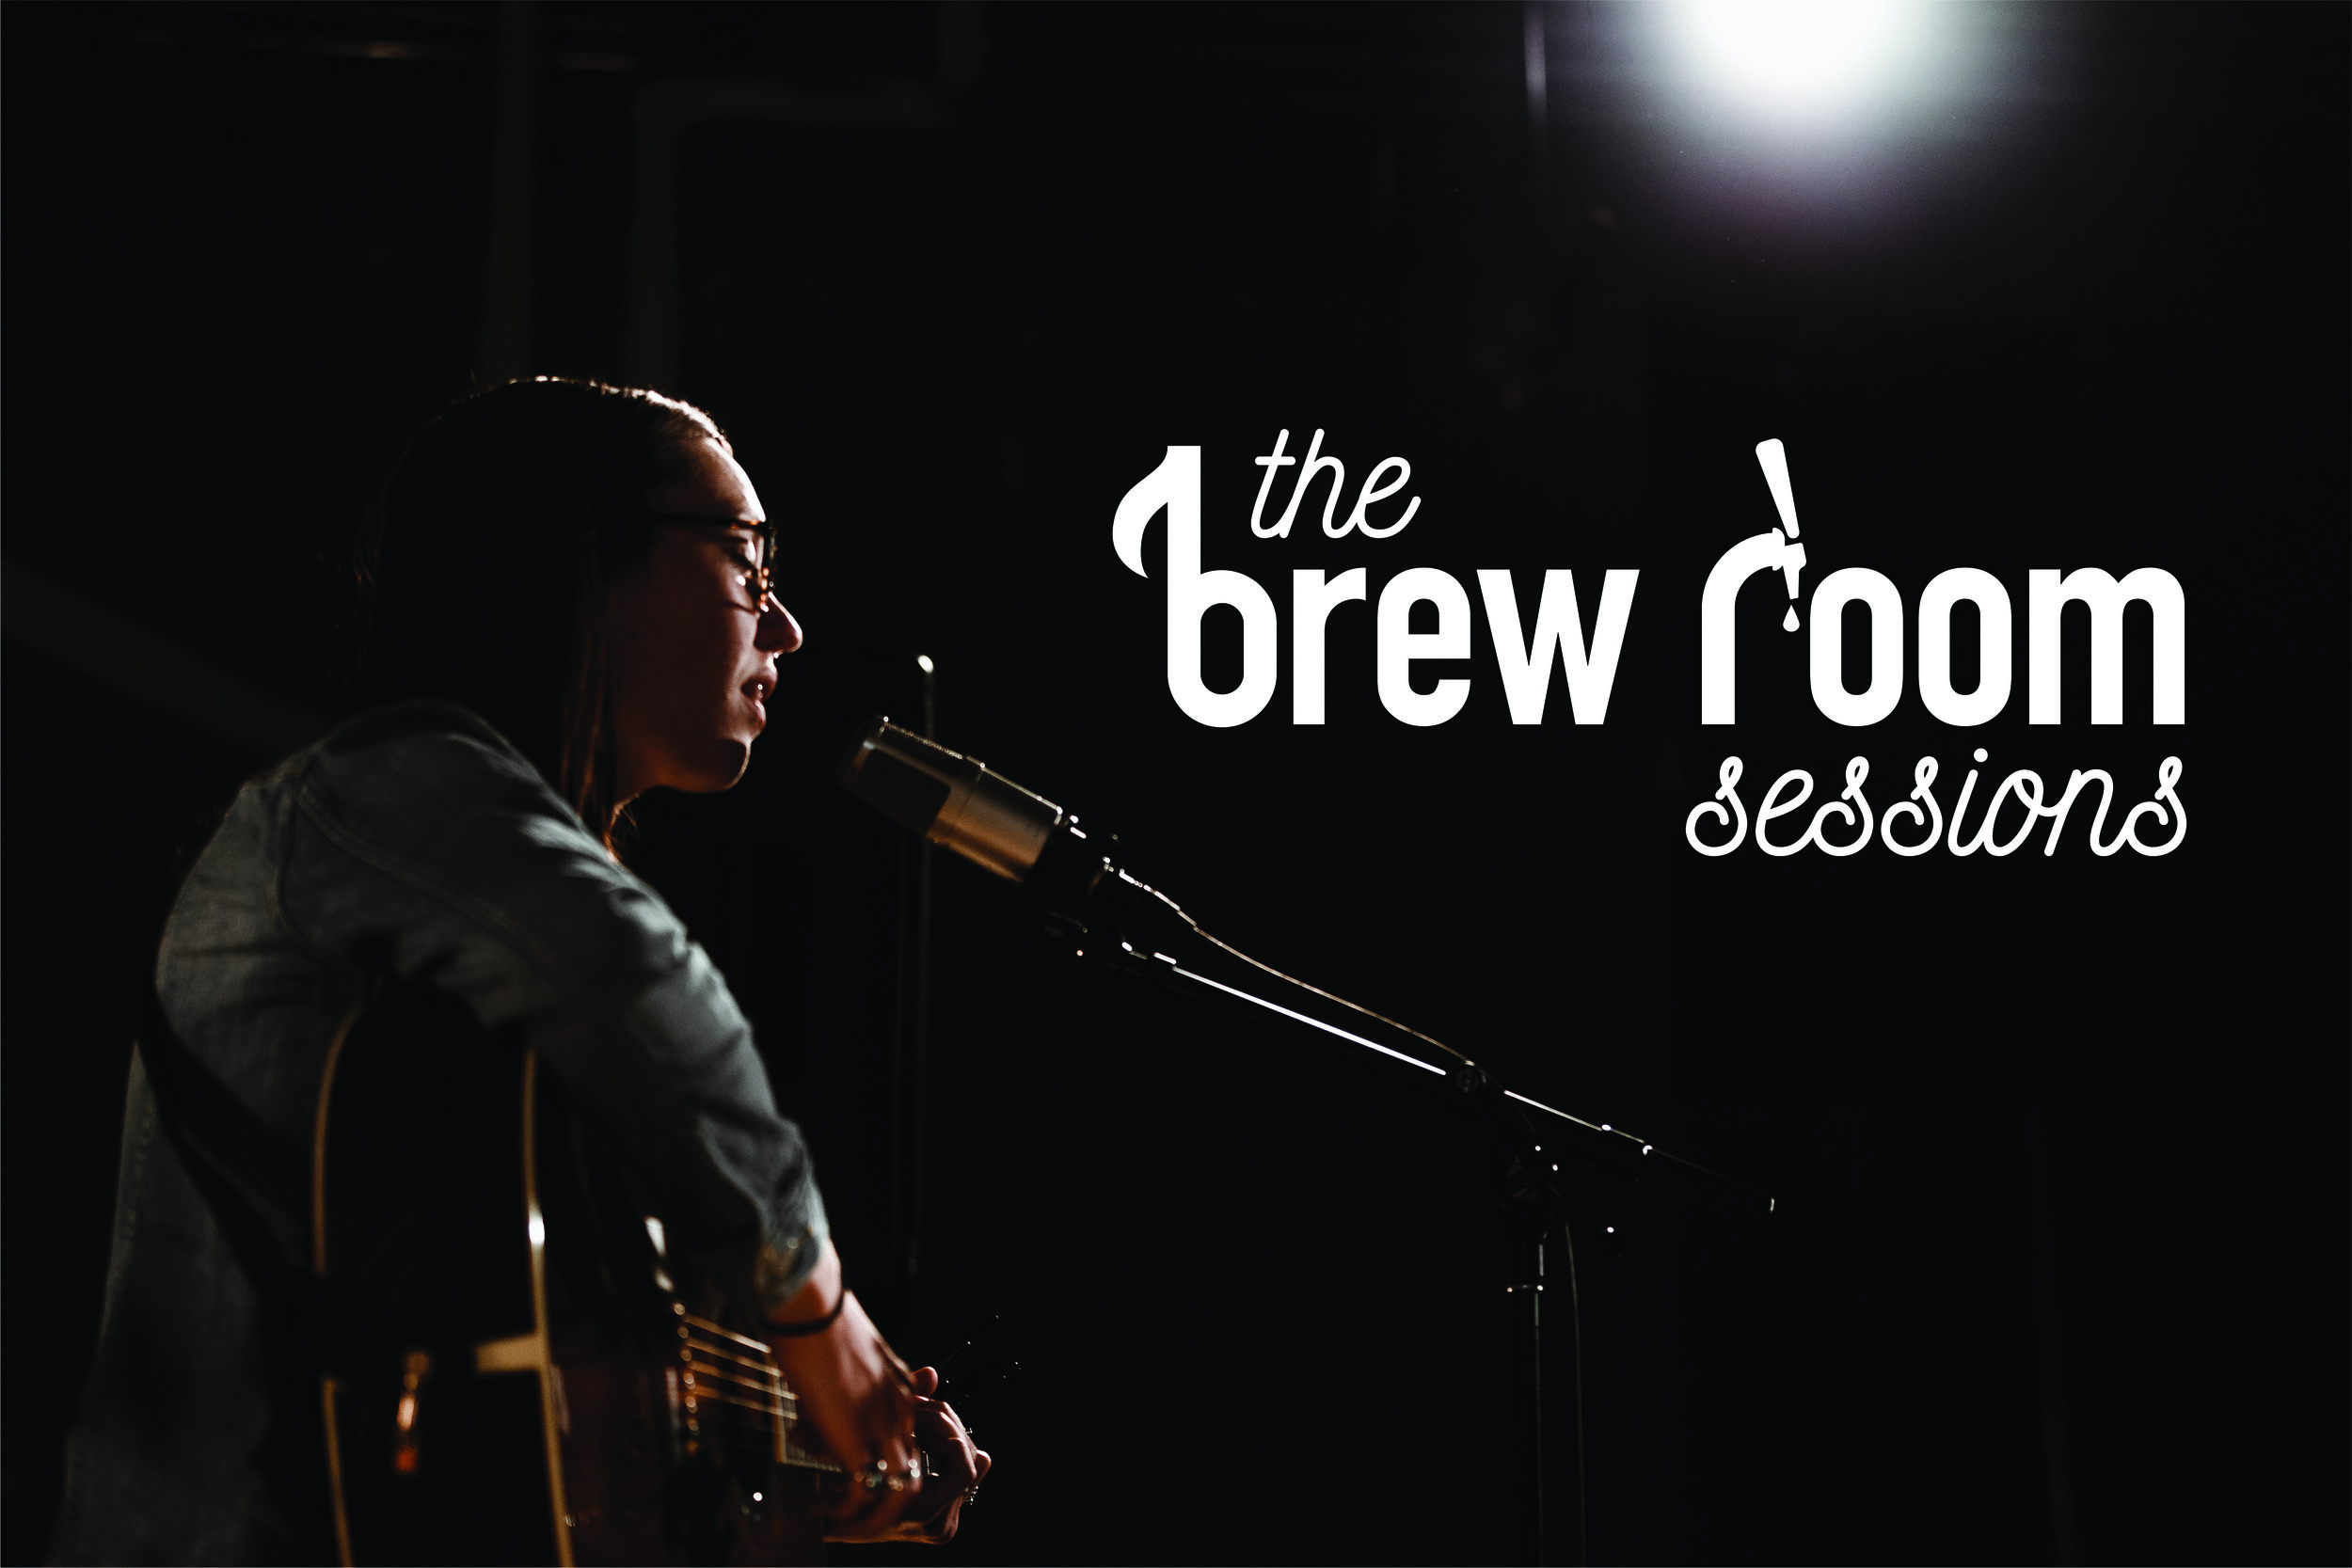 ozark collective ira wolf brew room sessions